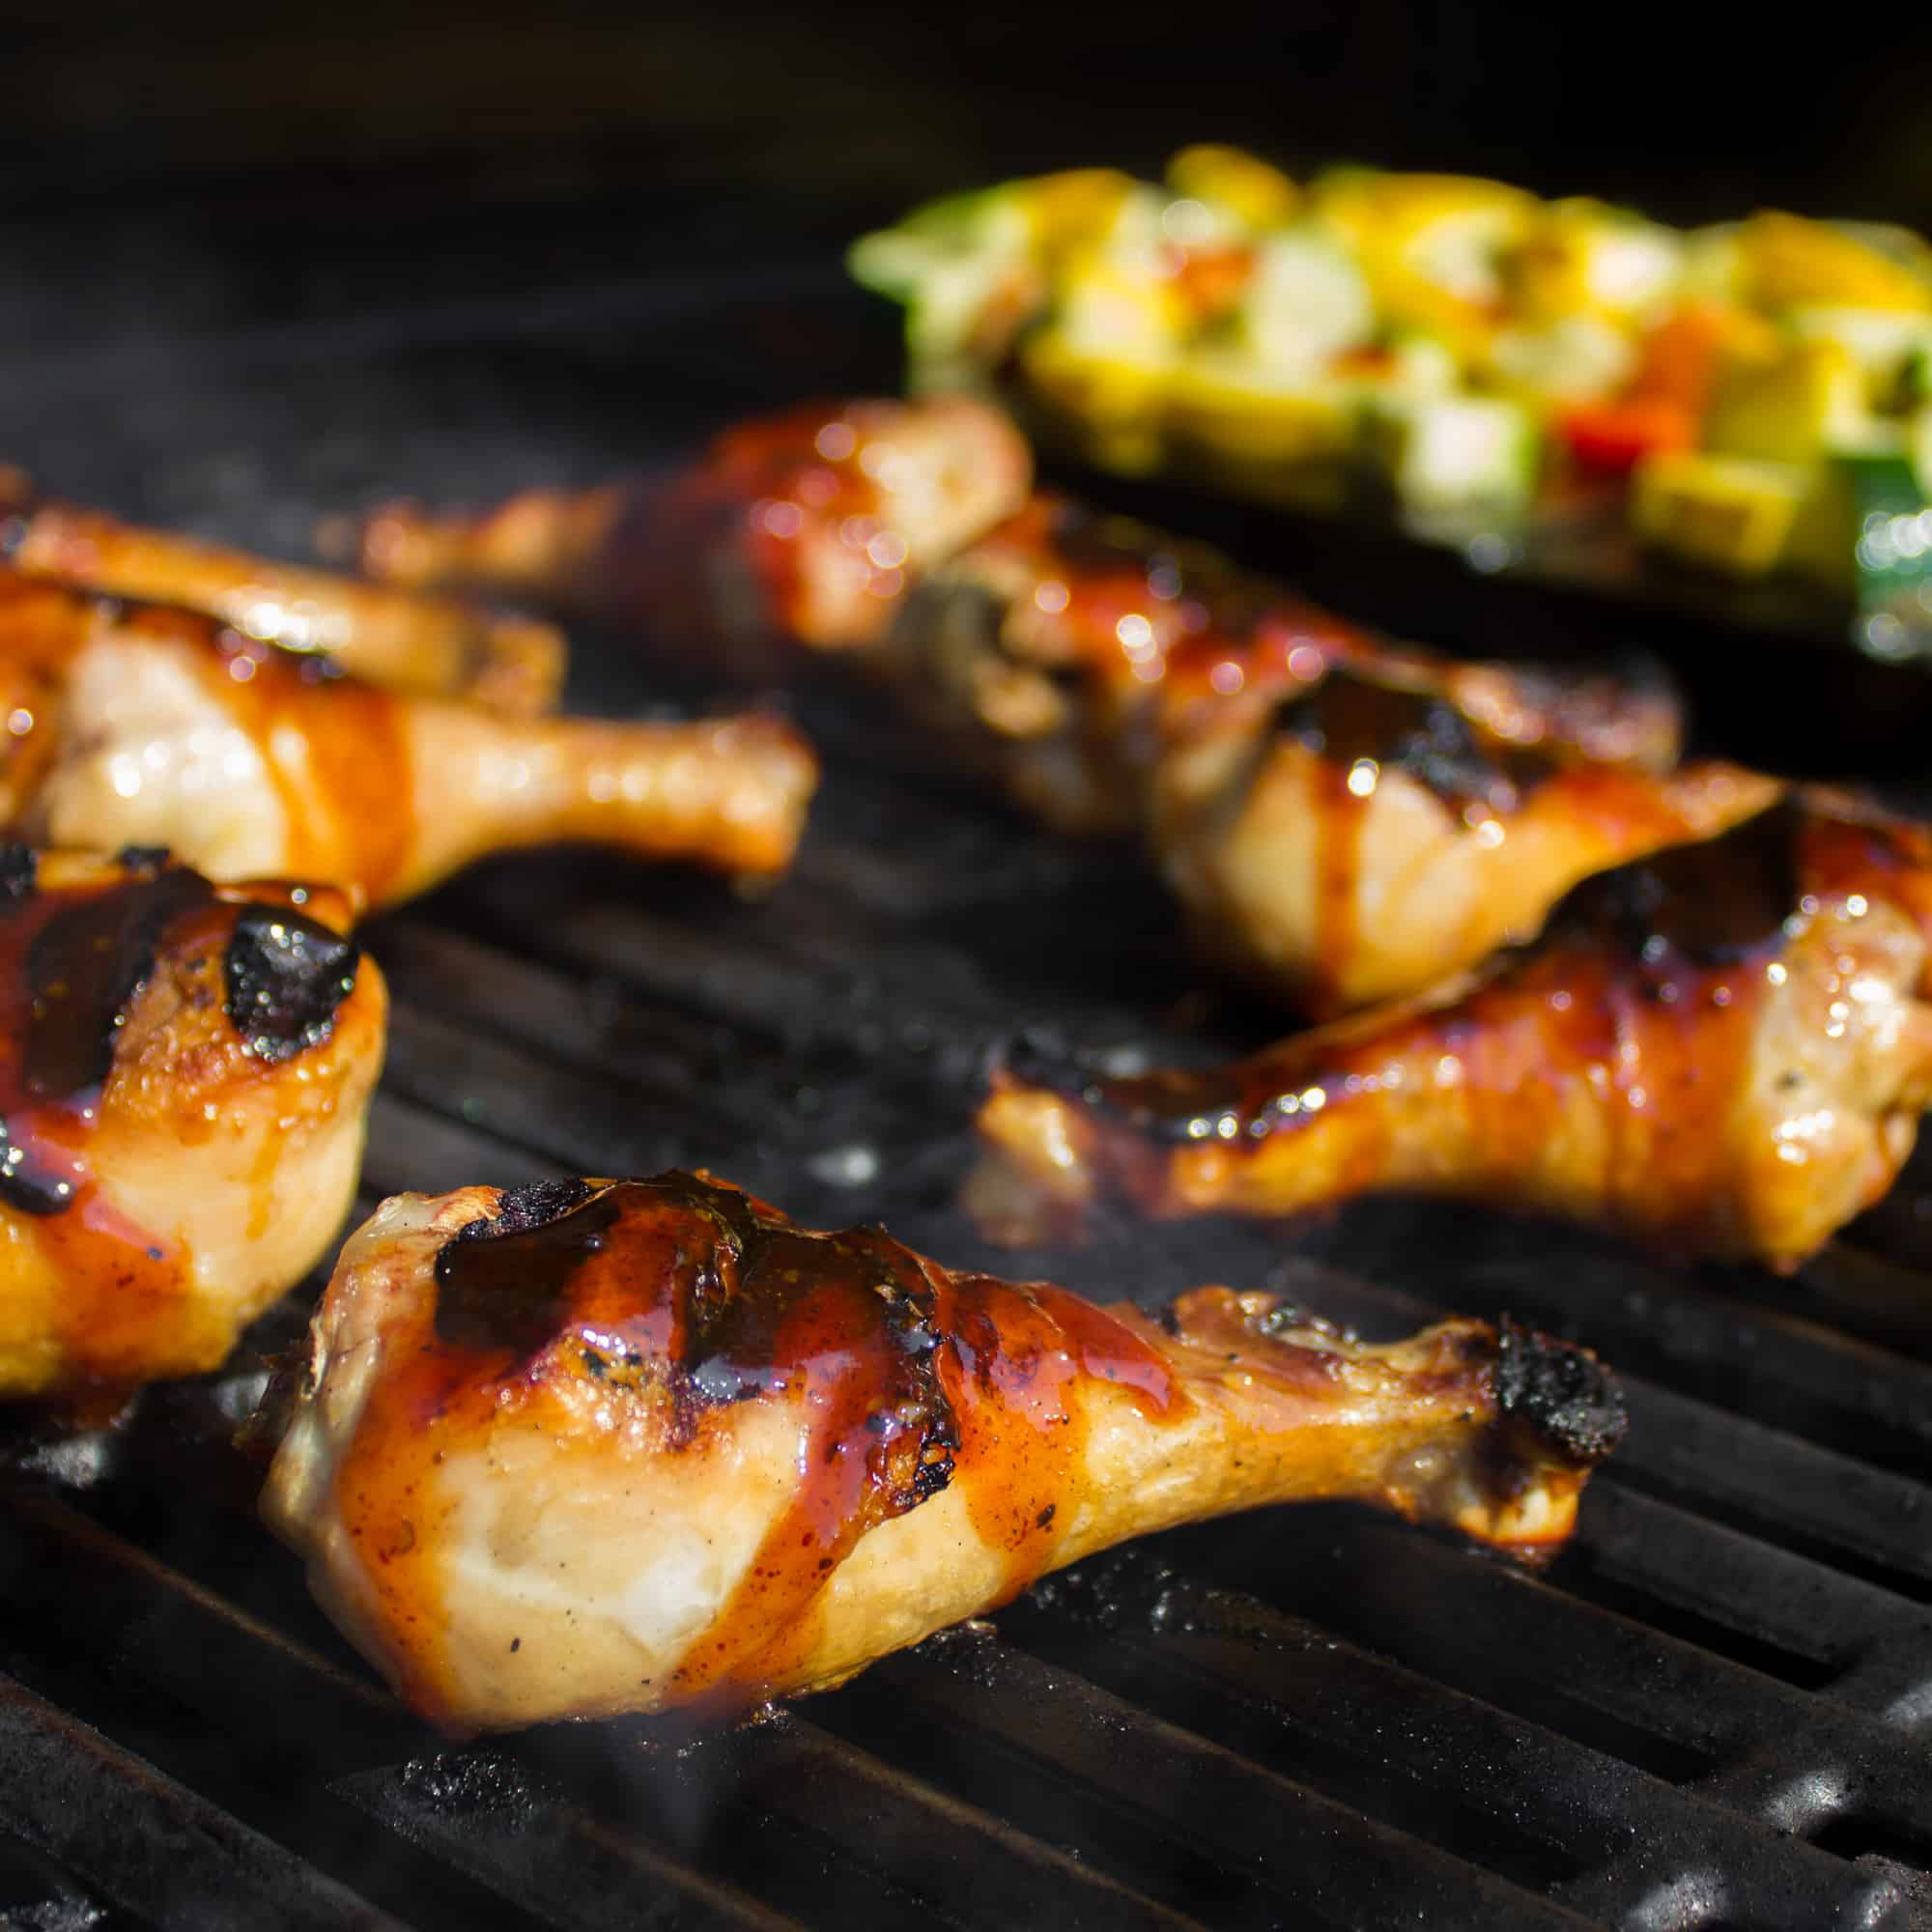 How to Grill Chicken Drumsticks - Gas Grill Recipe and Instructions